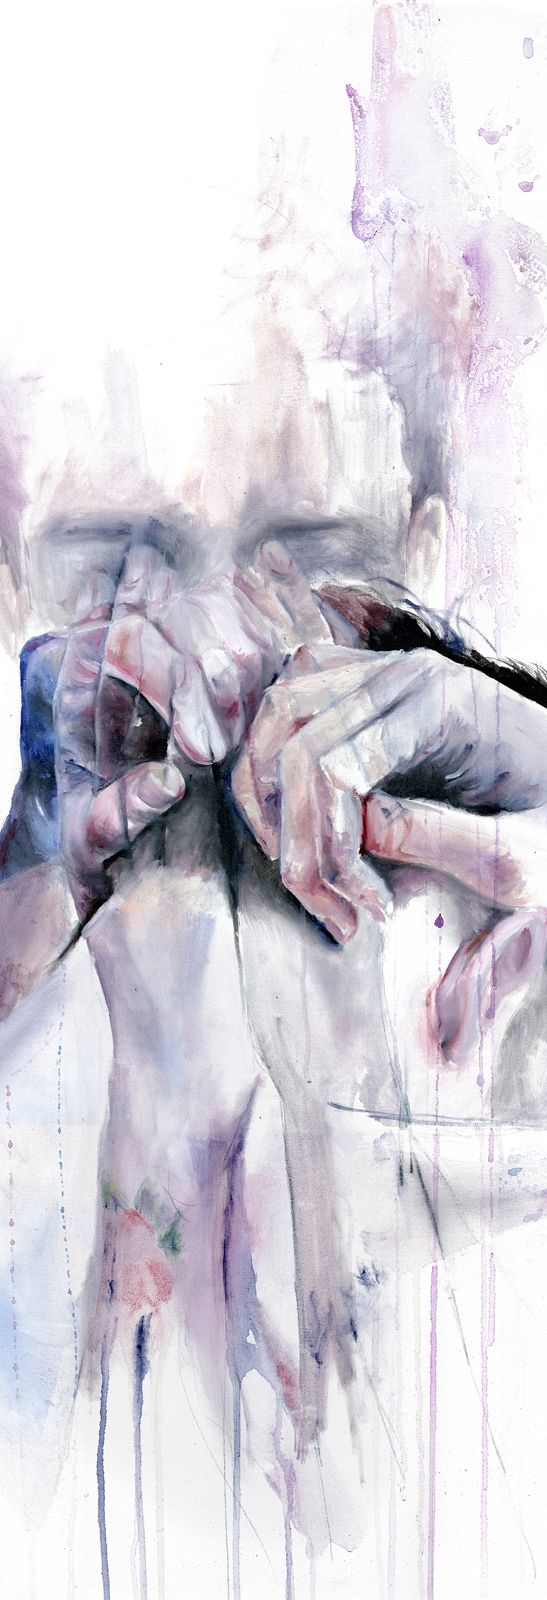 'Gestures' by Agnes Cecile - Fine Art Prints available in a variety of formats at Eyes On Walls ?  http://www.eyesonwalls.com/collections/agnes-cecile?utm_source=pinterest&utm_source=pinterest&utm_medium=ads&utm_content=Gestures&utm_campaign=Agnes%20Cecile